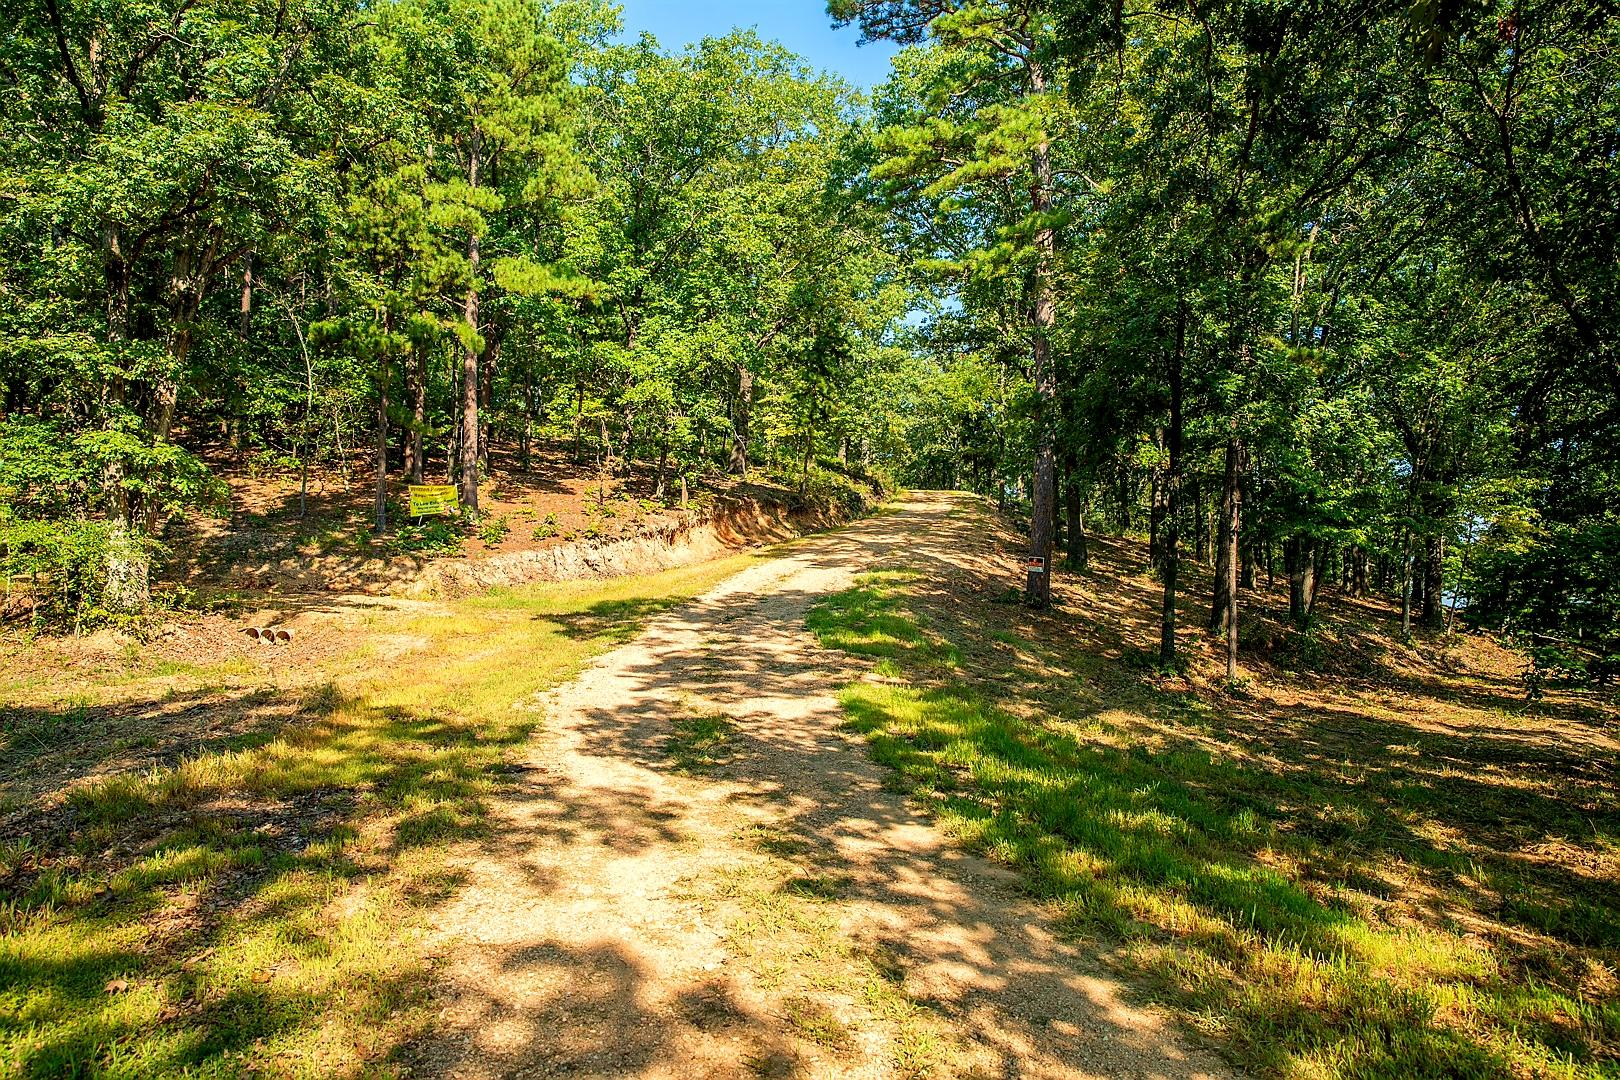 Tbd State Highway Kimberling City, MO 65686